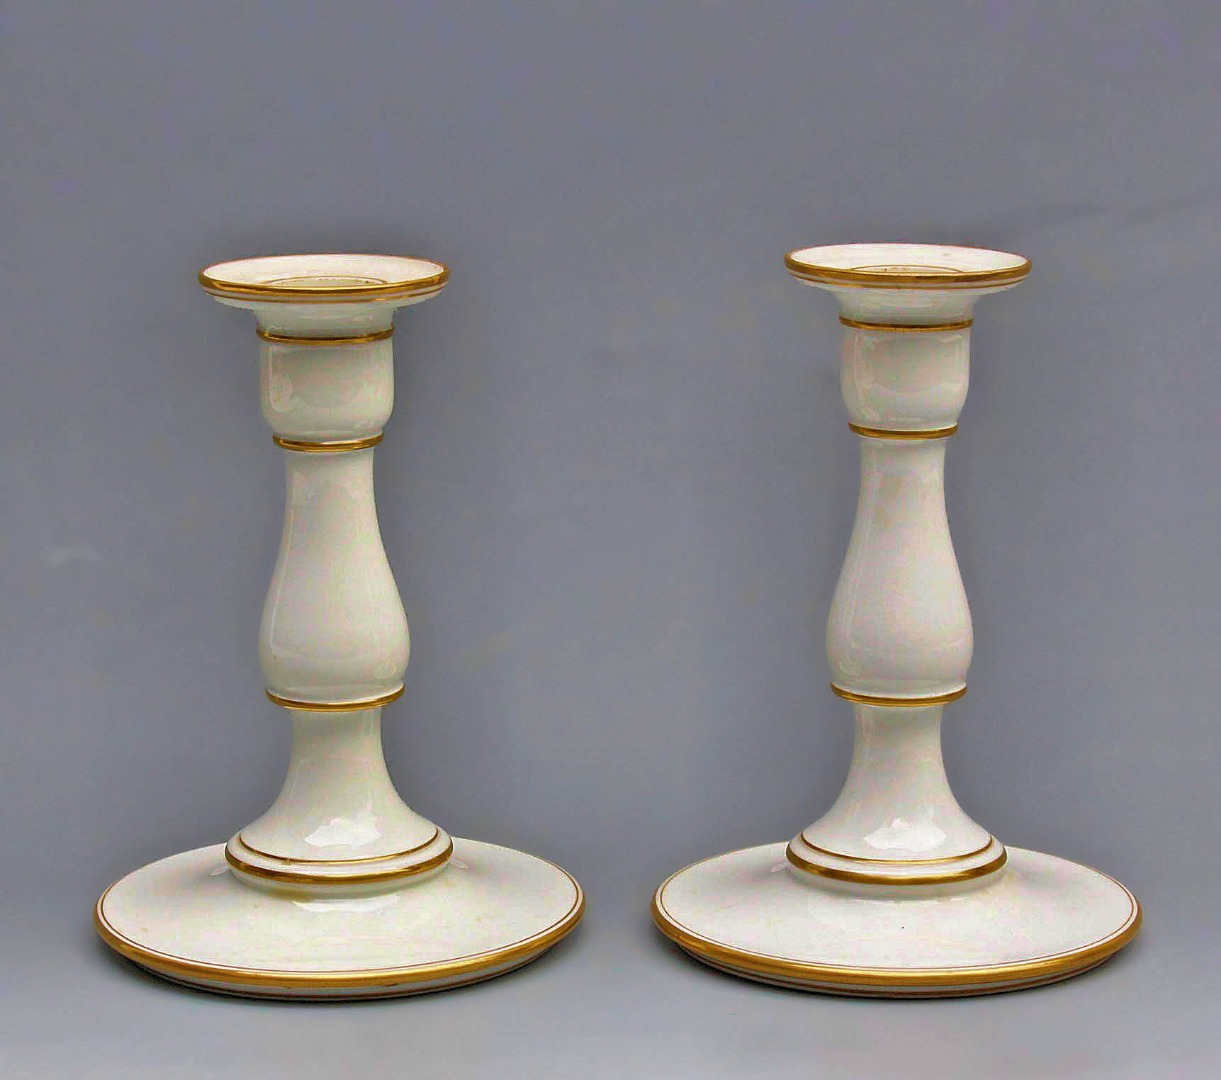 PAIR OF SEVRES PORCELAIN CANDLESTICKS